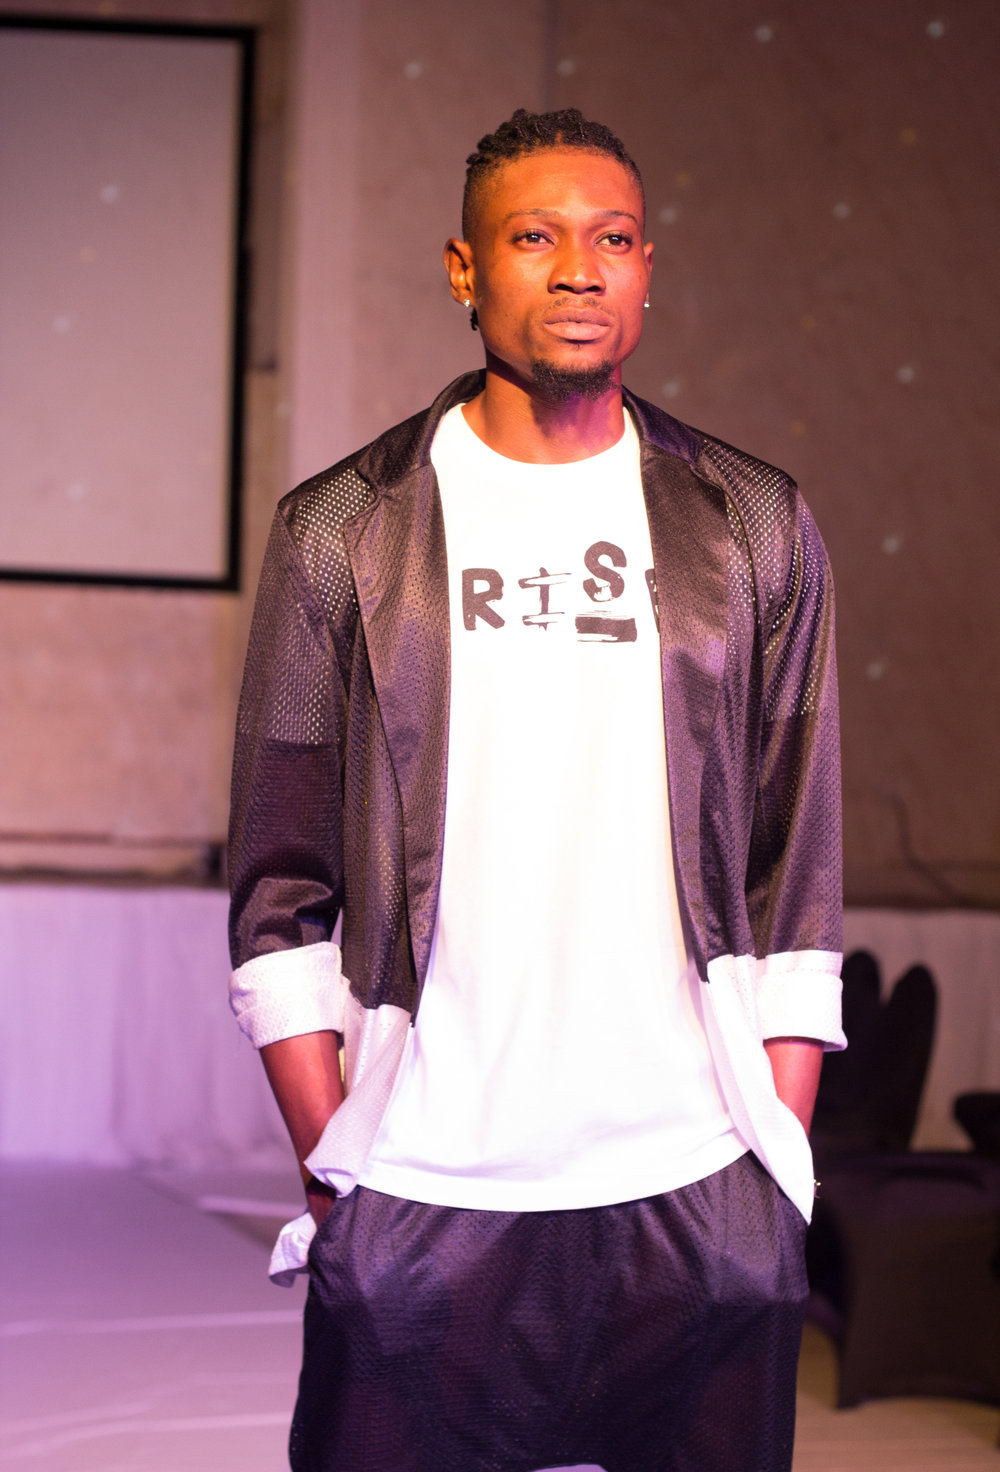 Sisco ( @6cojohn) Mr. University Africa 2015, Best Male Model Award Winner of TEFS 2016 and Finale Model for VonRay Designs; Mesh Blazer and Drop Crotch Joggers Designed and Made by VonRay Designs & RISE Tee by 4Leaders/Hyjack Works; PHOTOGRAPHER- Ebiye Wilson Jeke of Wilson Photography (@wilsonjekephotography)